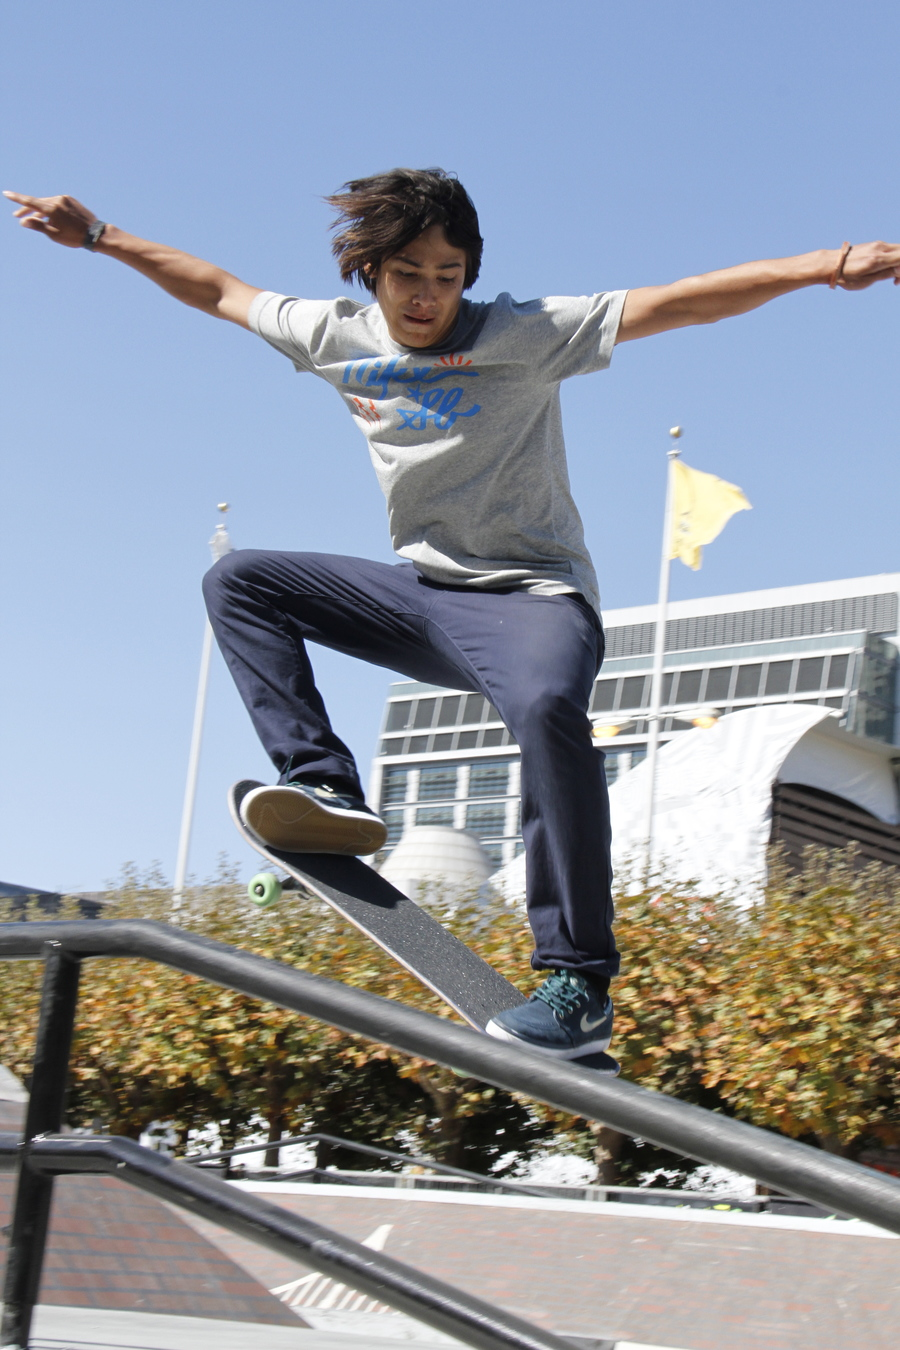 Got some shots of Sean Malto getting rad at the Dew Tour